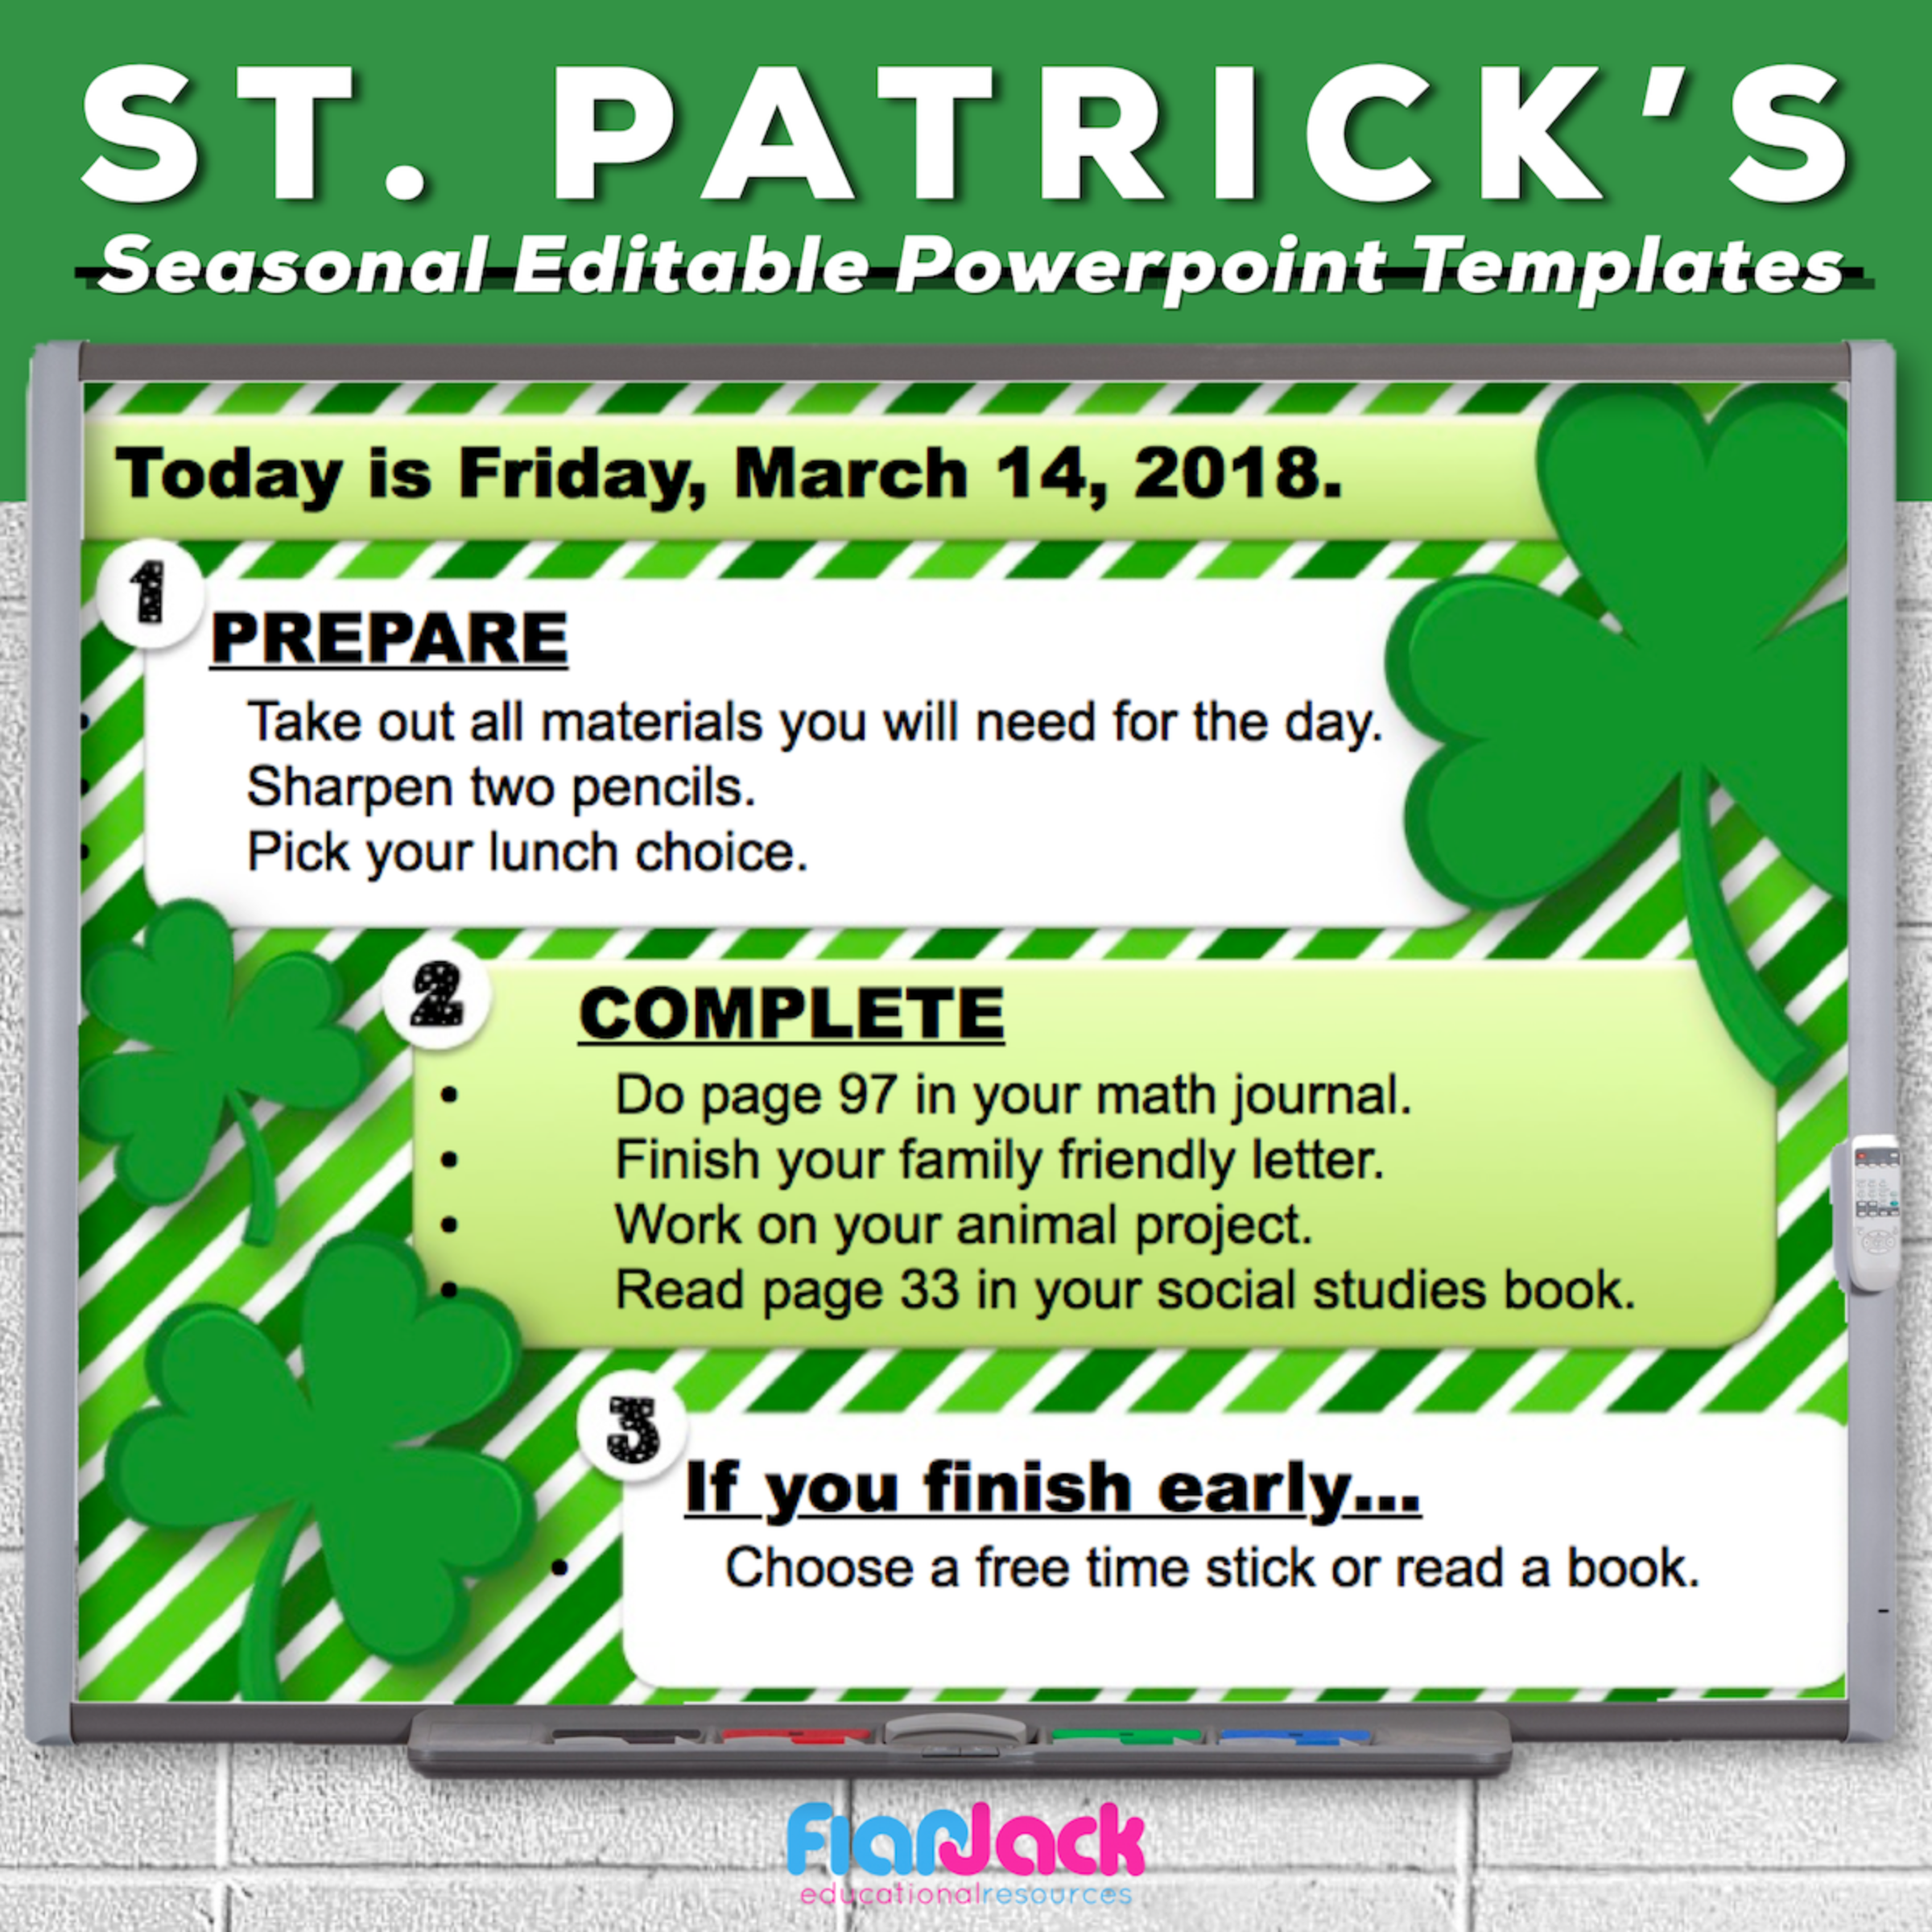 St. Patrick's Day Editable PowerPoint Templates